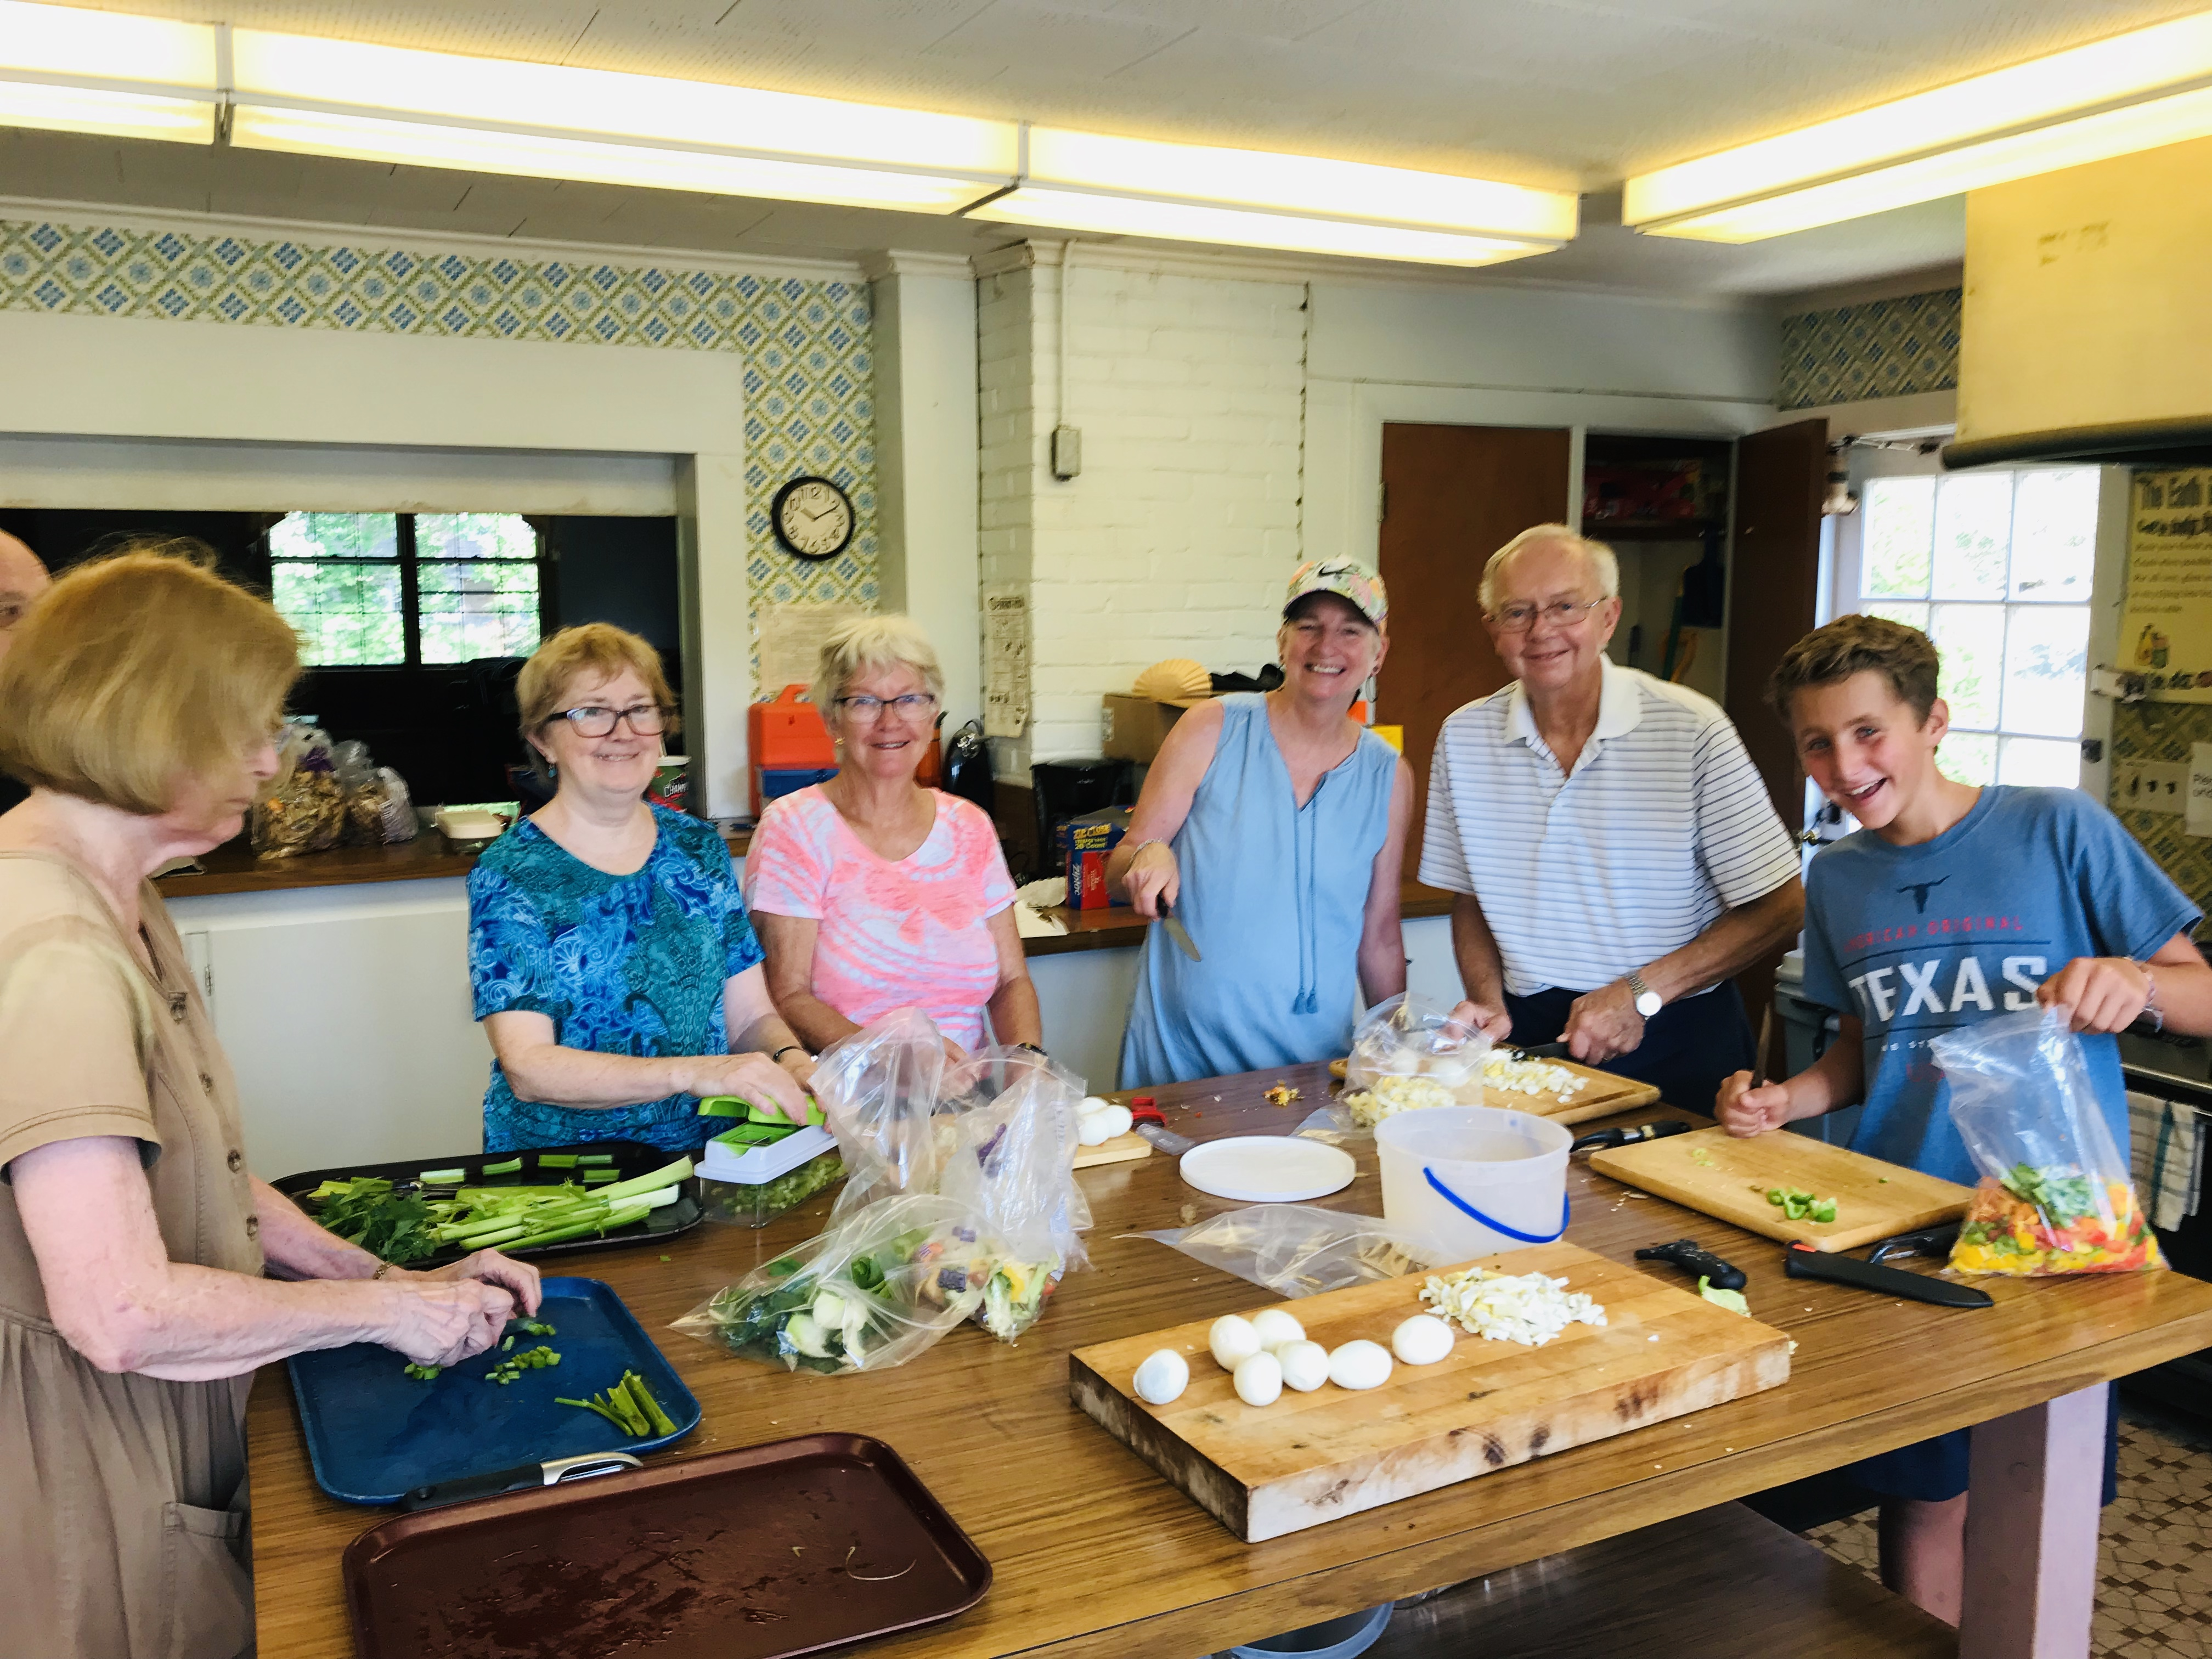 Father Bill's Prep (August 19, 2019)